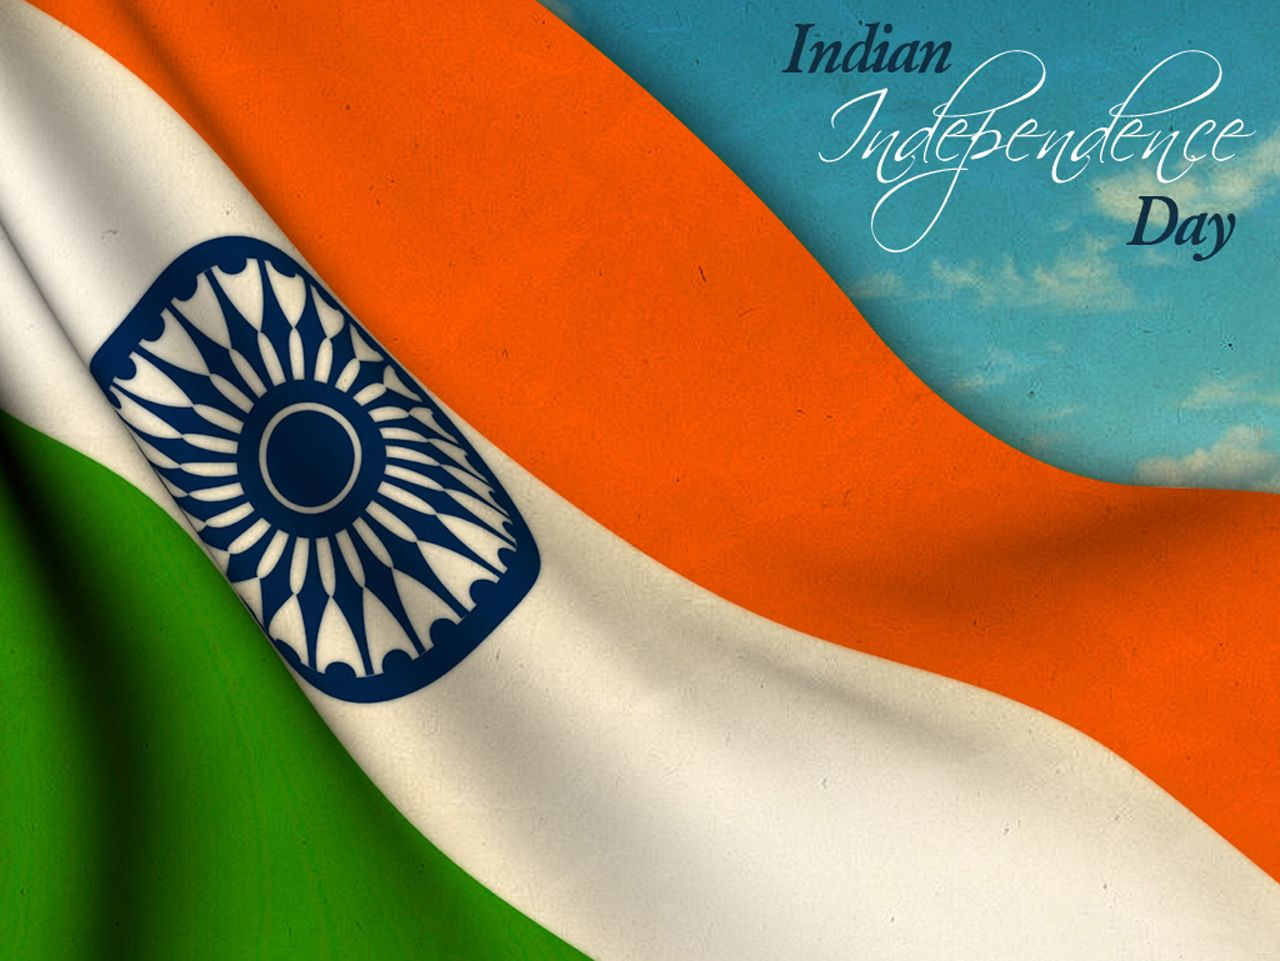 Happy Independence Day Desktop Hd Wallpaper Indian Independence Day Independence Day Hd Wallpaper Independence Day Hd Happy independence day wallpapers free